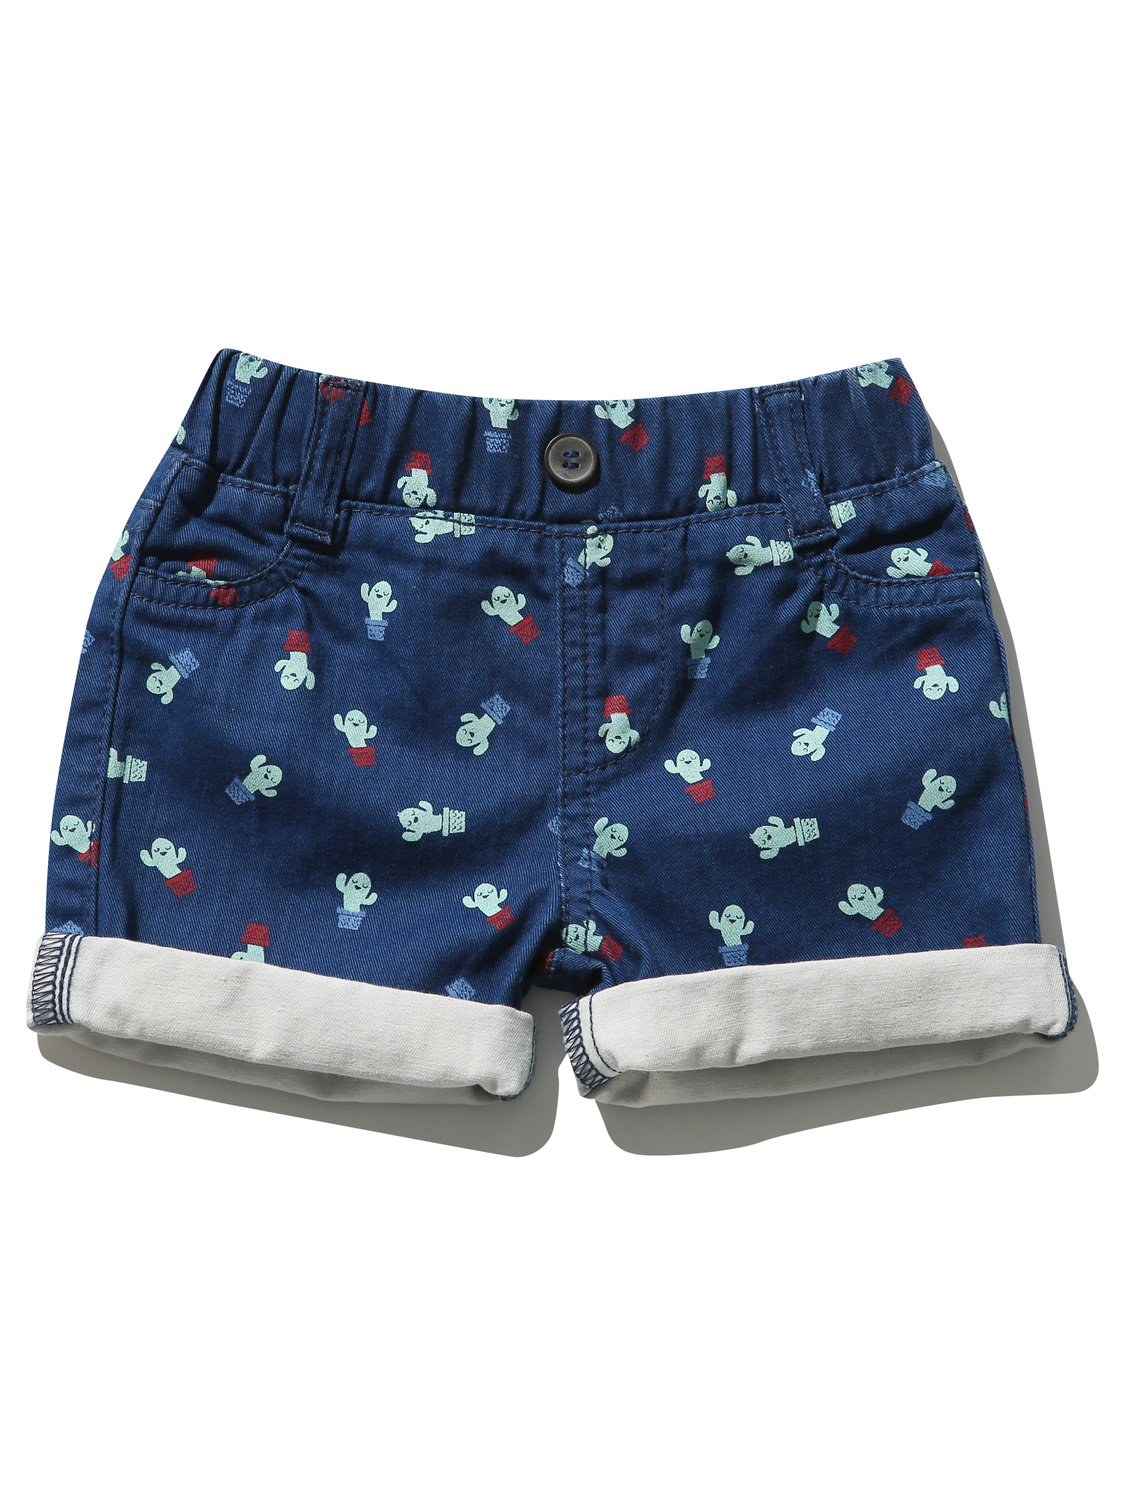 Baby Clothes Kids Baby Boy cactus print denim shorts with turn up hems  - Blue